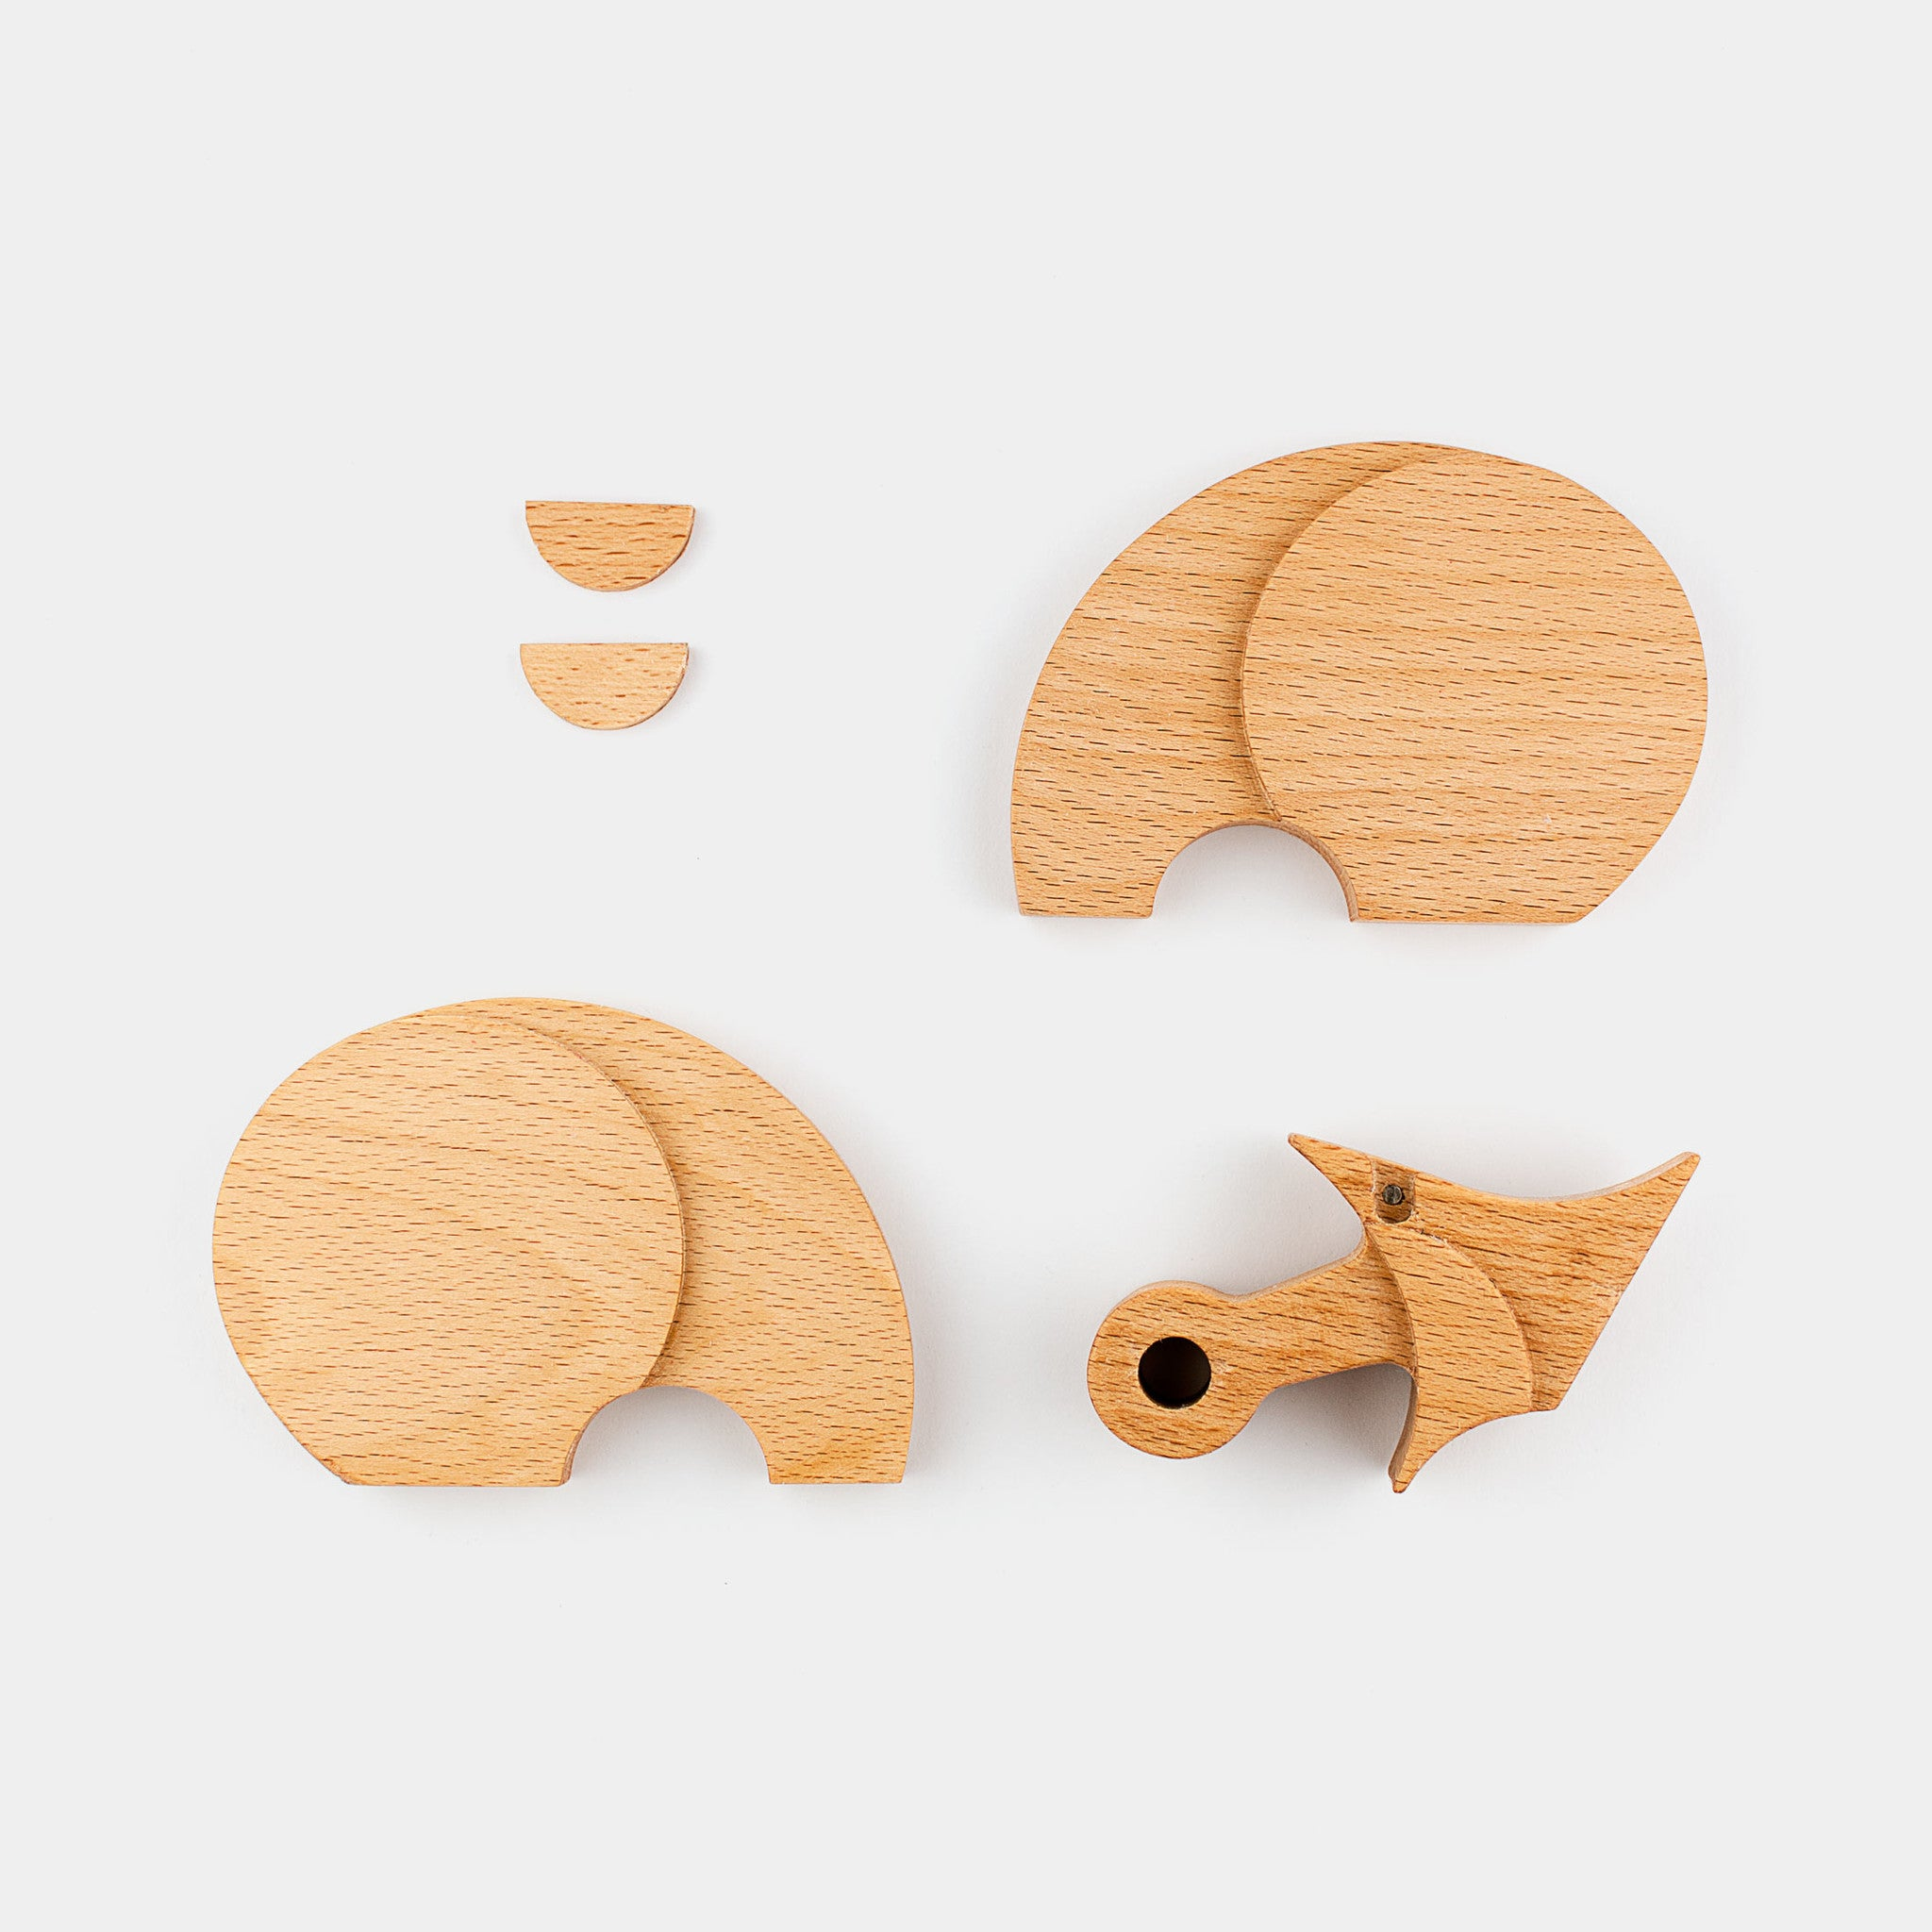 Riin The Rhinoceros by Wodibow — A great wooden animal puzzle with internal magnets that allow assembly of each puzzle and a bit of movement.